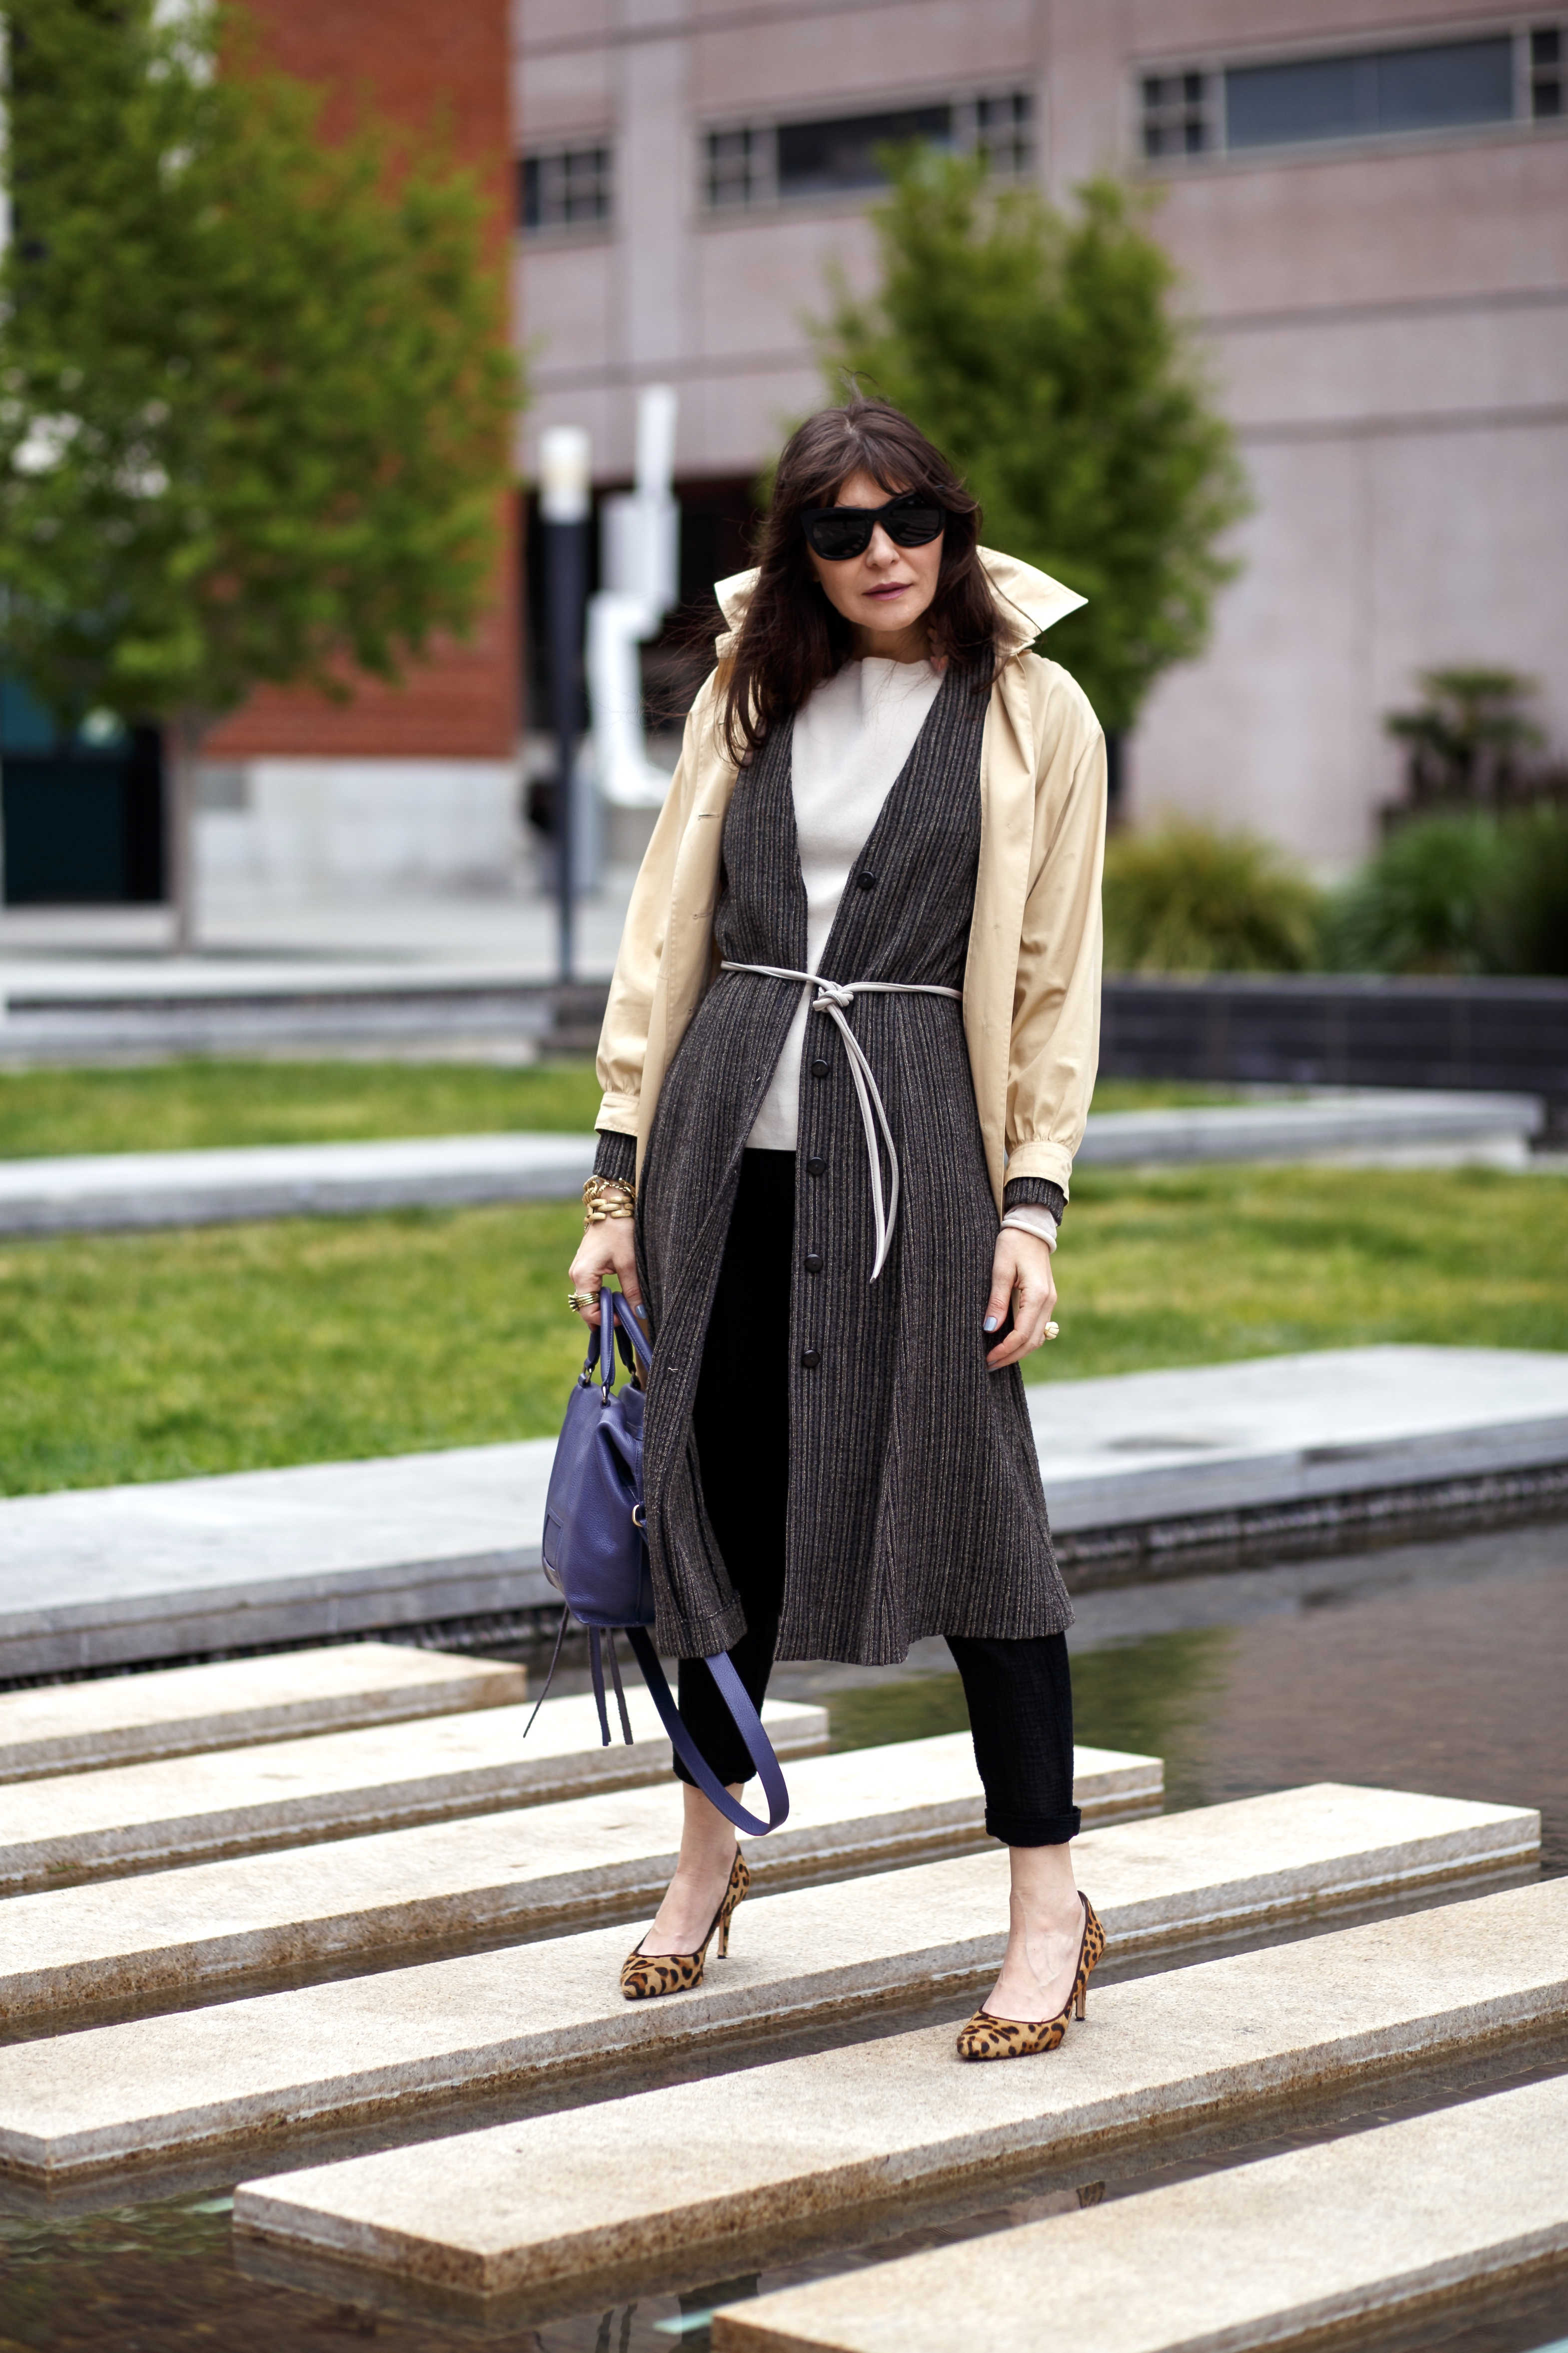 How to layer two coats for spring.